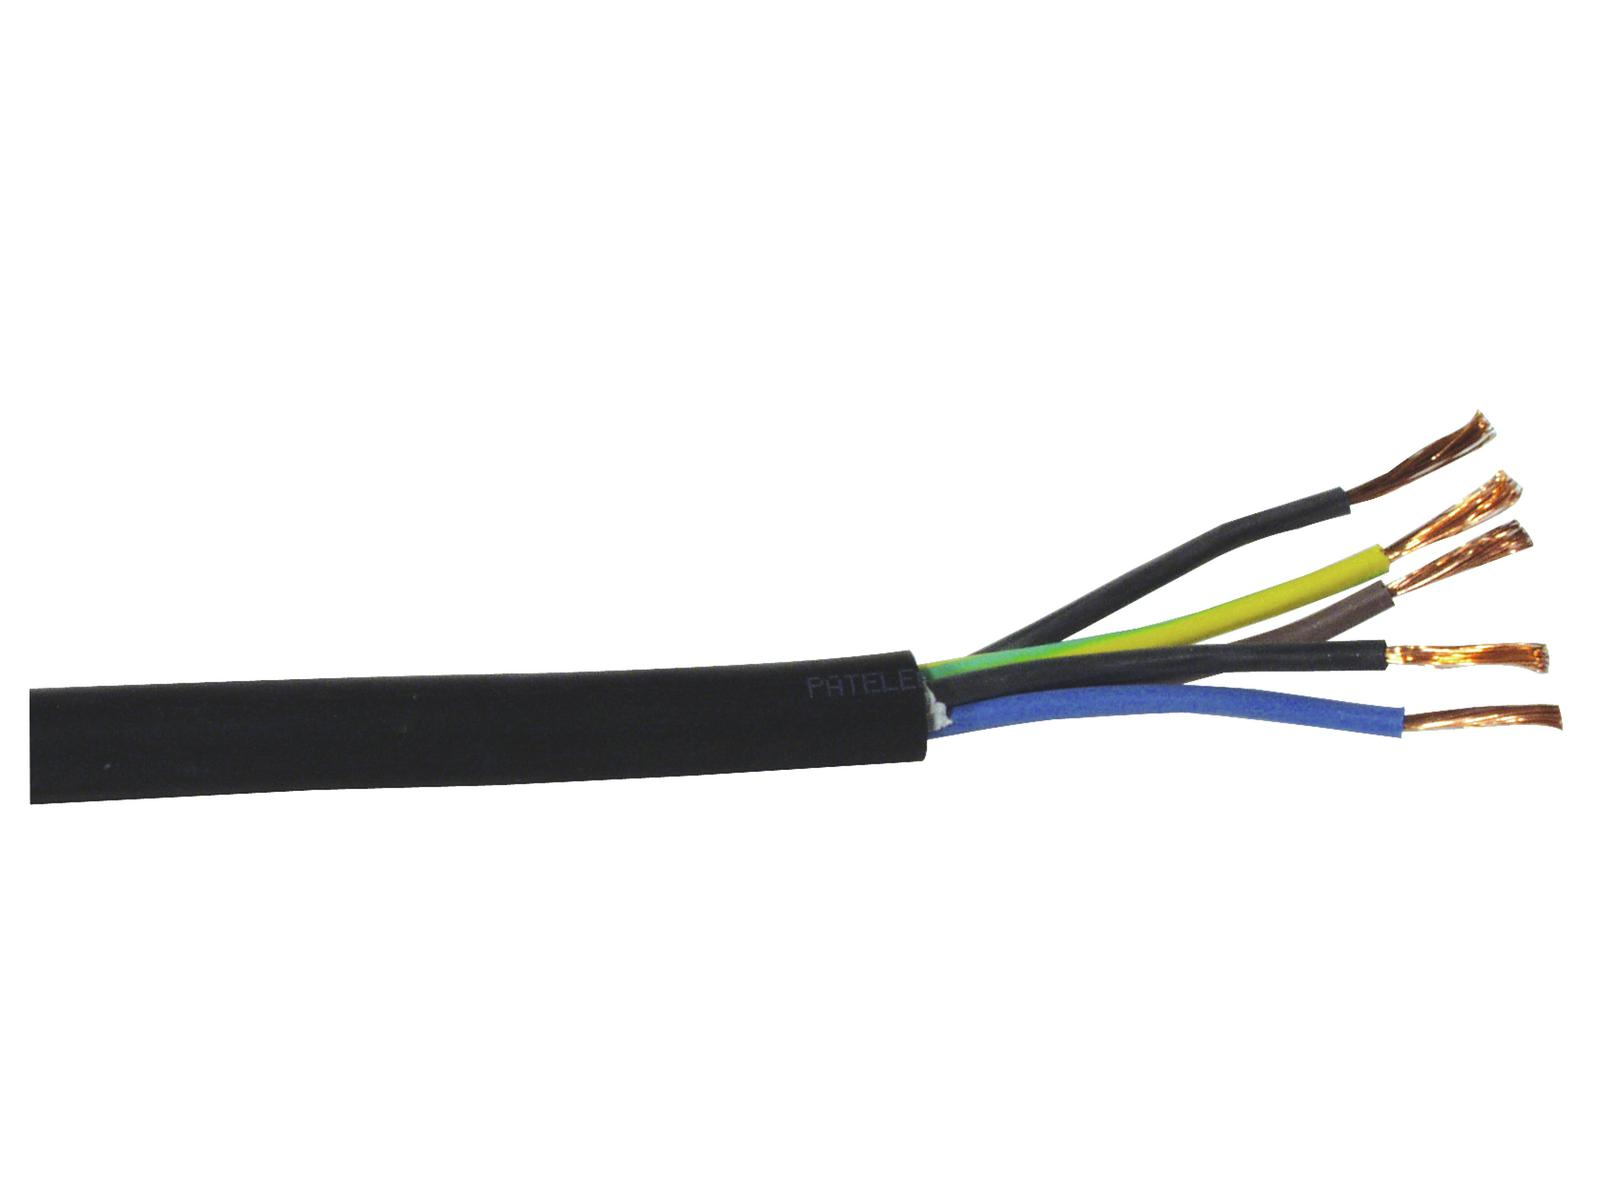 Power supply cable HELUKABEL 5x2,5 25m H07RN-F